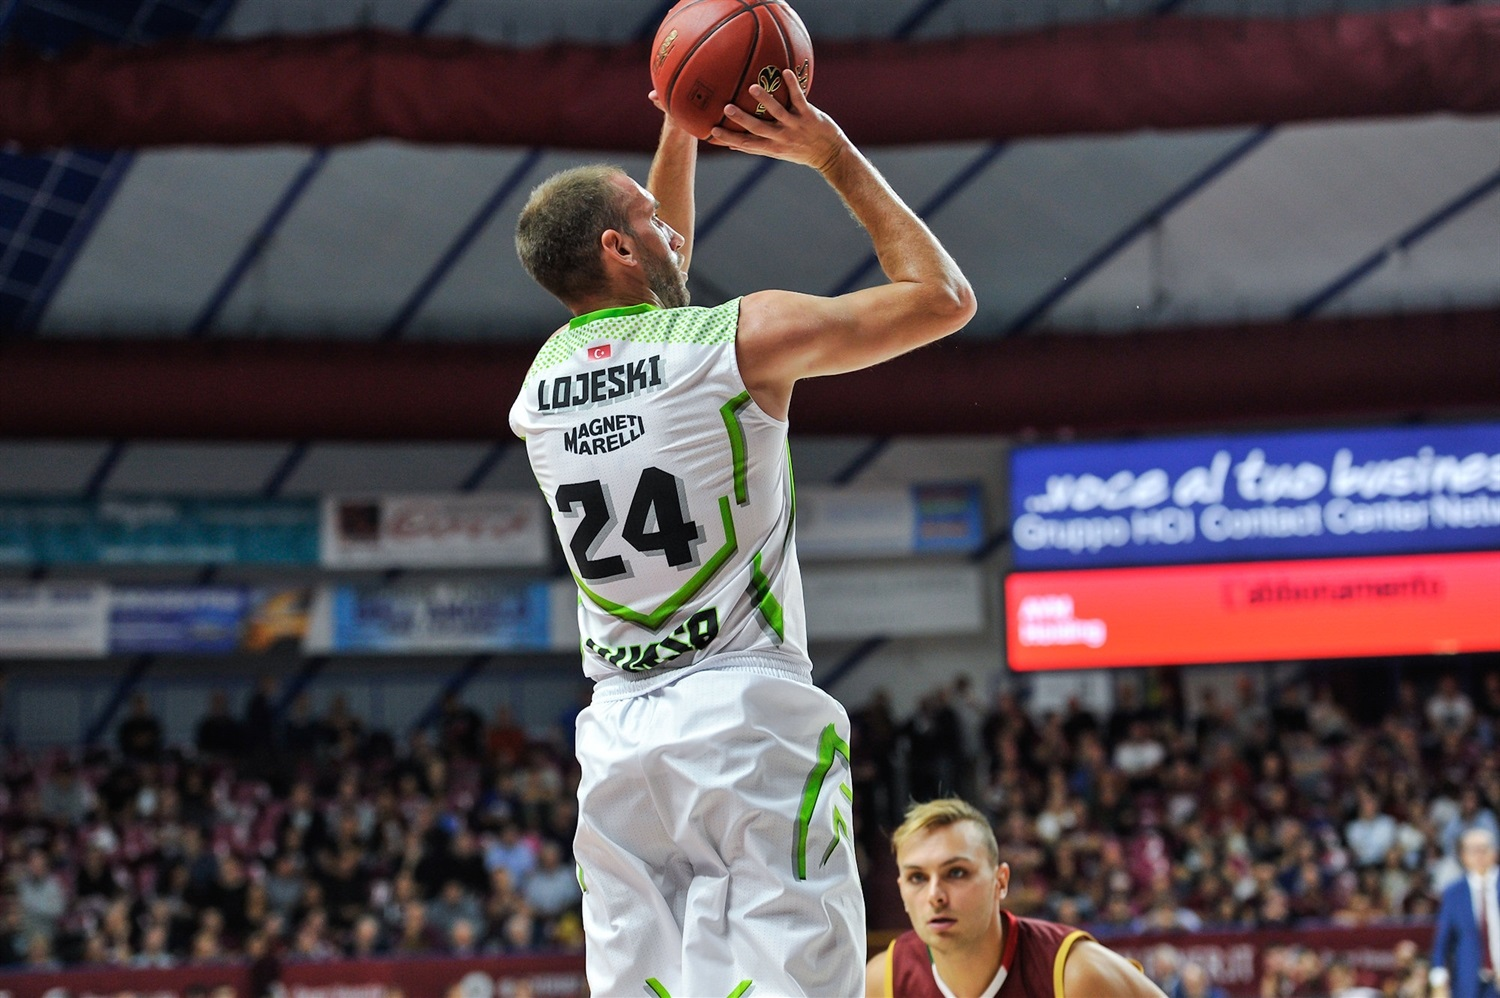 Matt Lojeski - Tofas Bursa (photo Reyer) - EC19